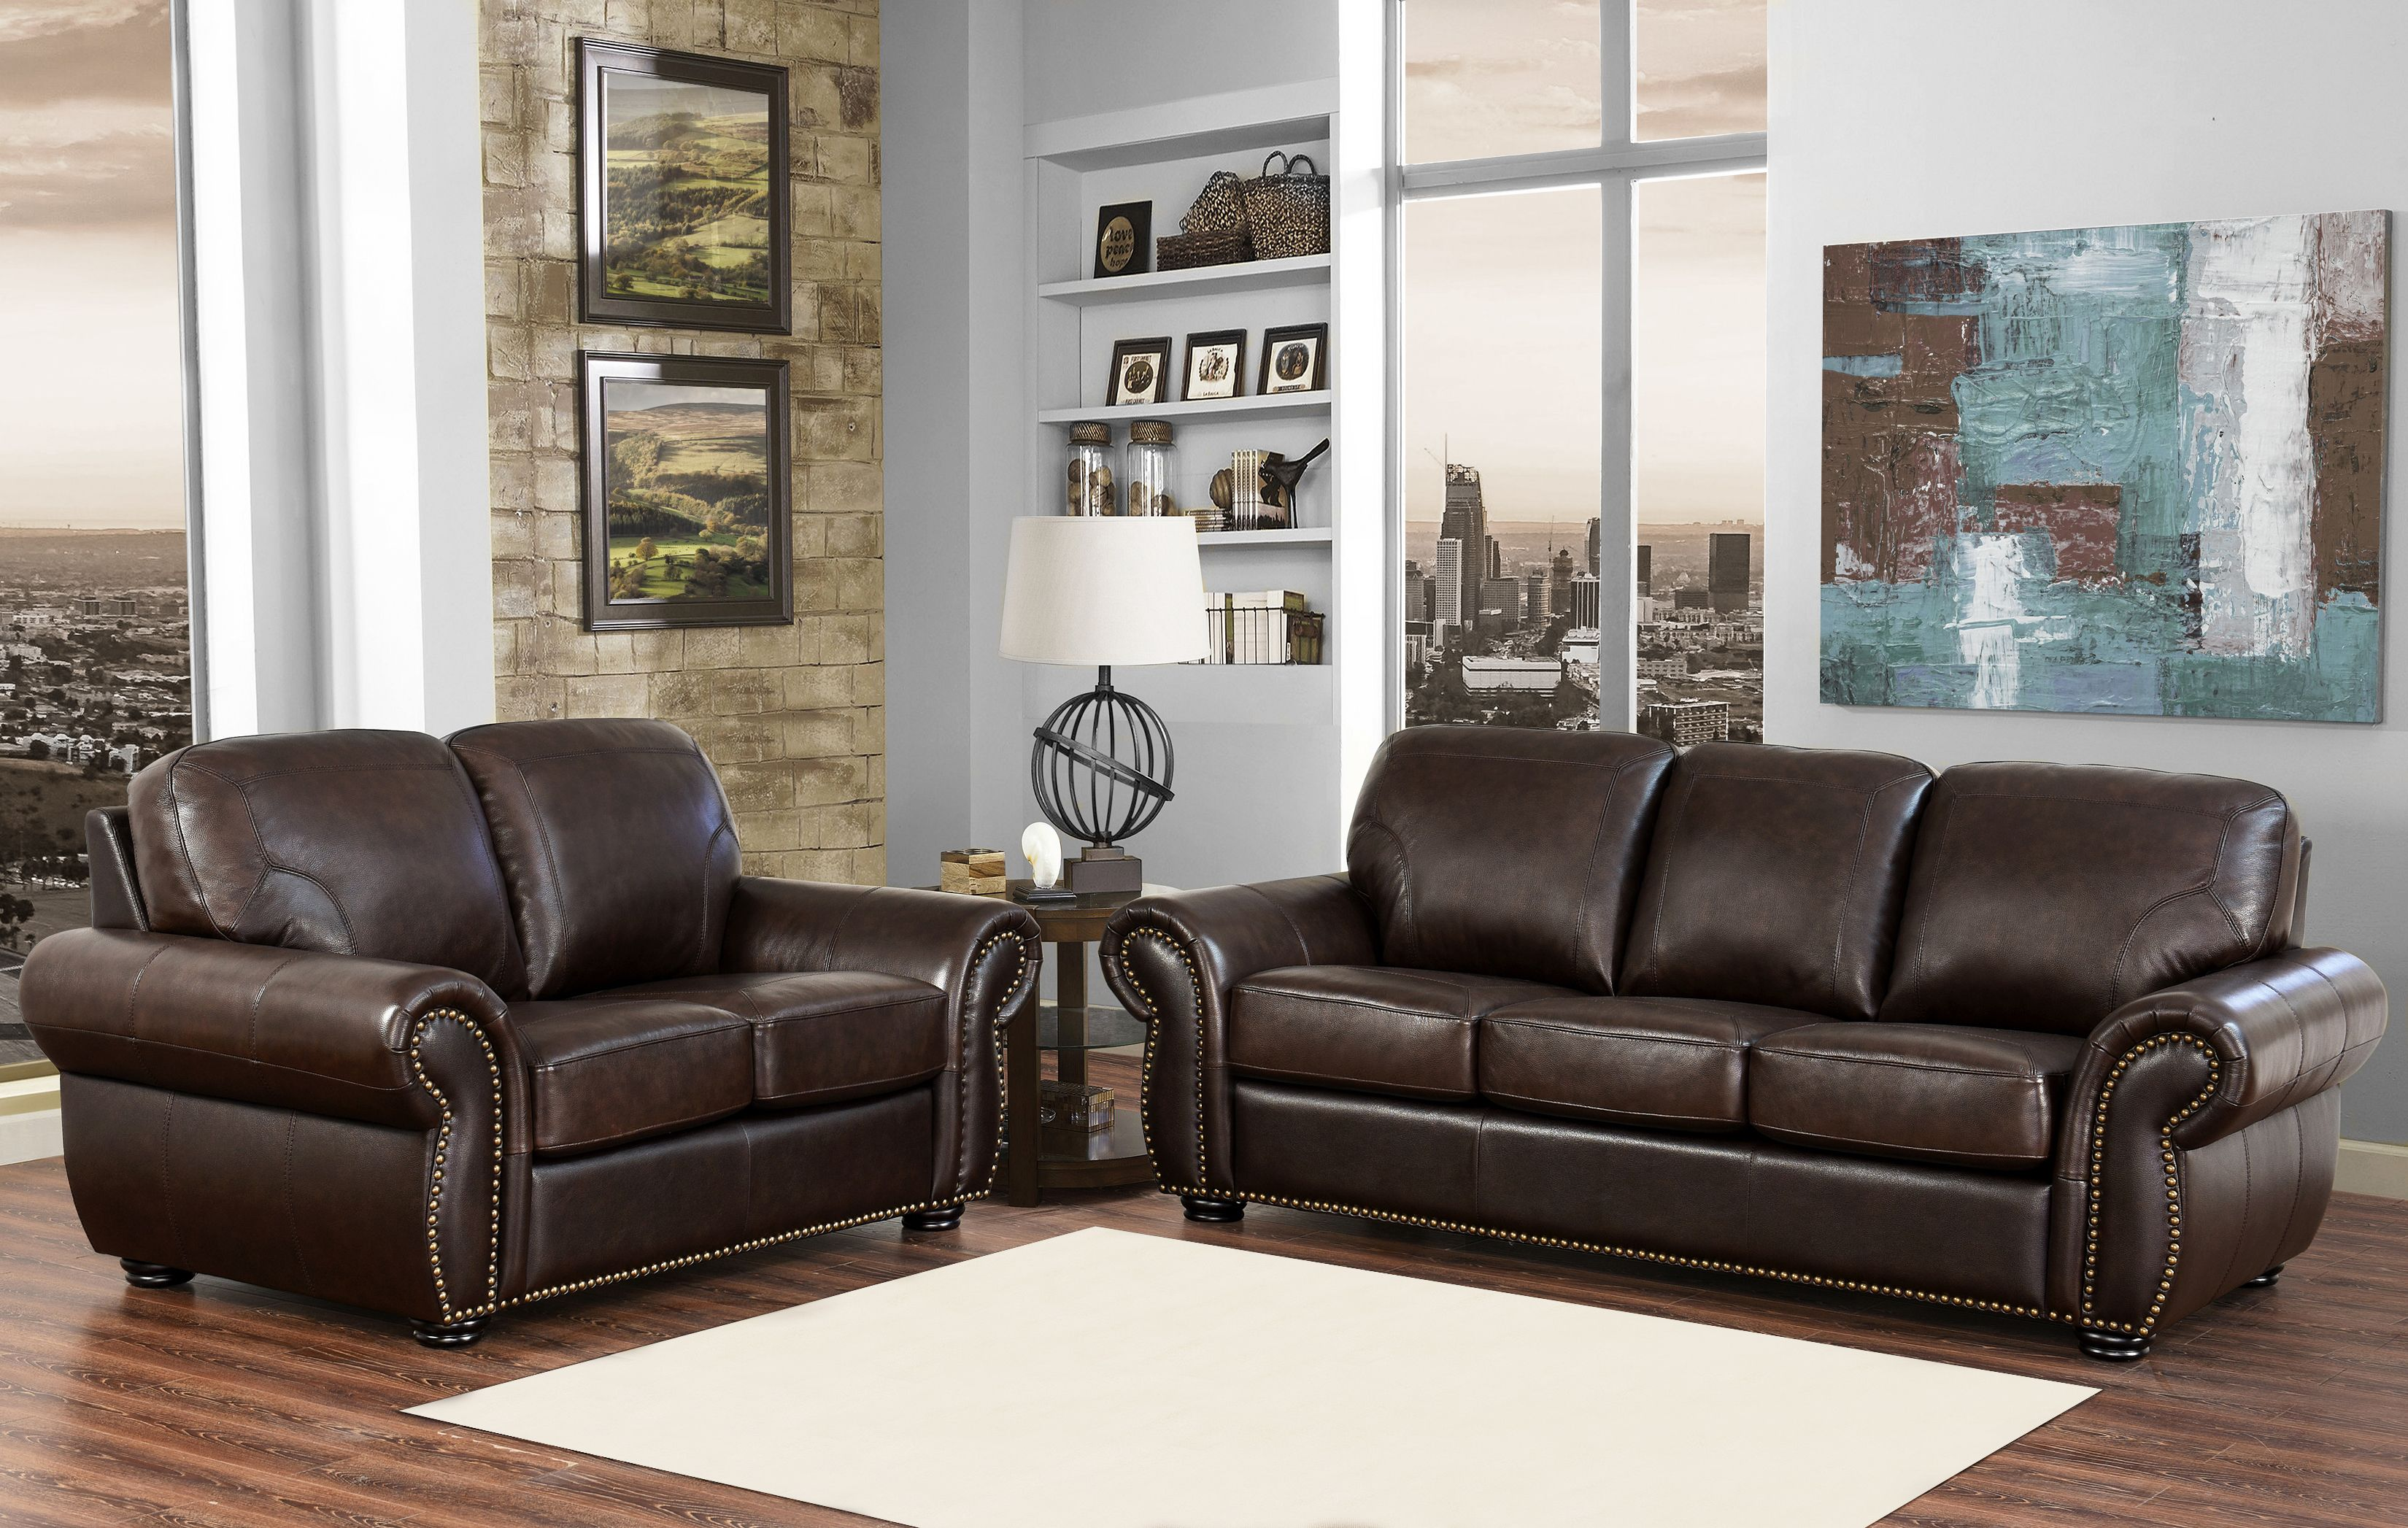 Leather Living Room Furnitures Breckenridge 2 Piece Top Grain Leather Living Room Set